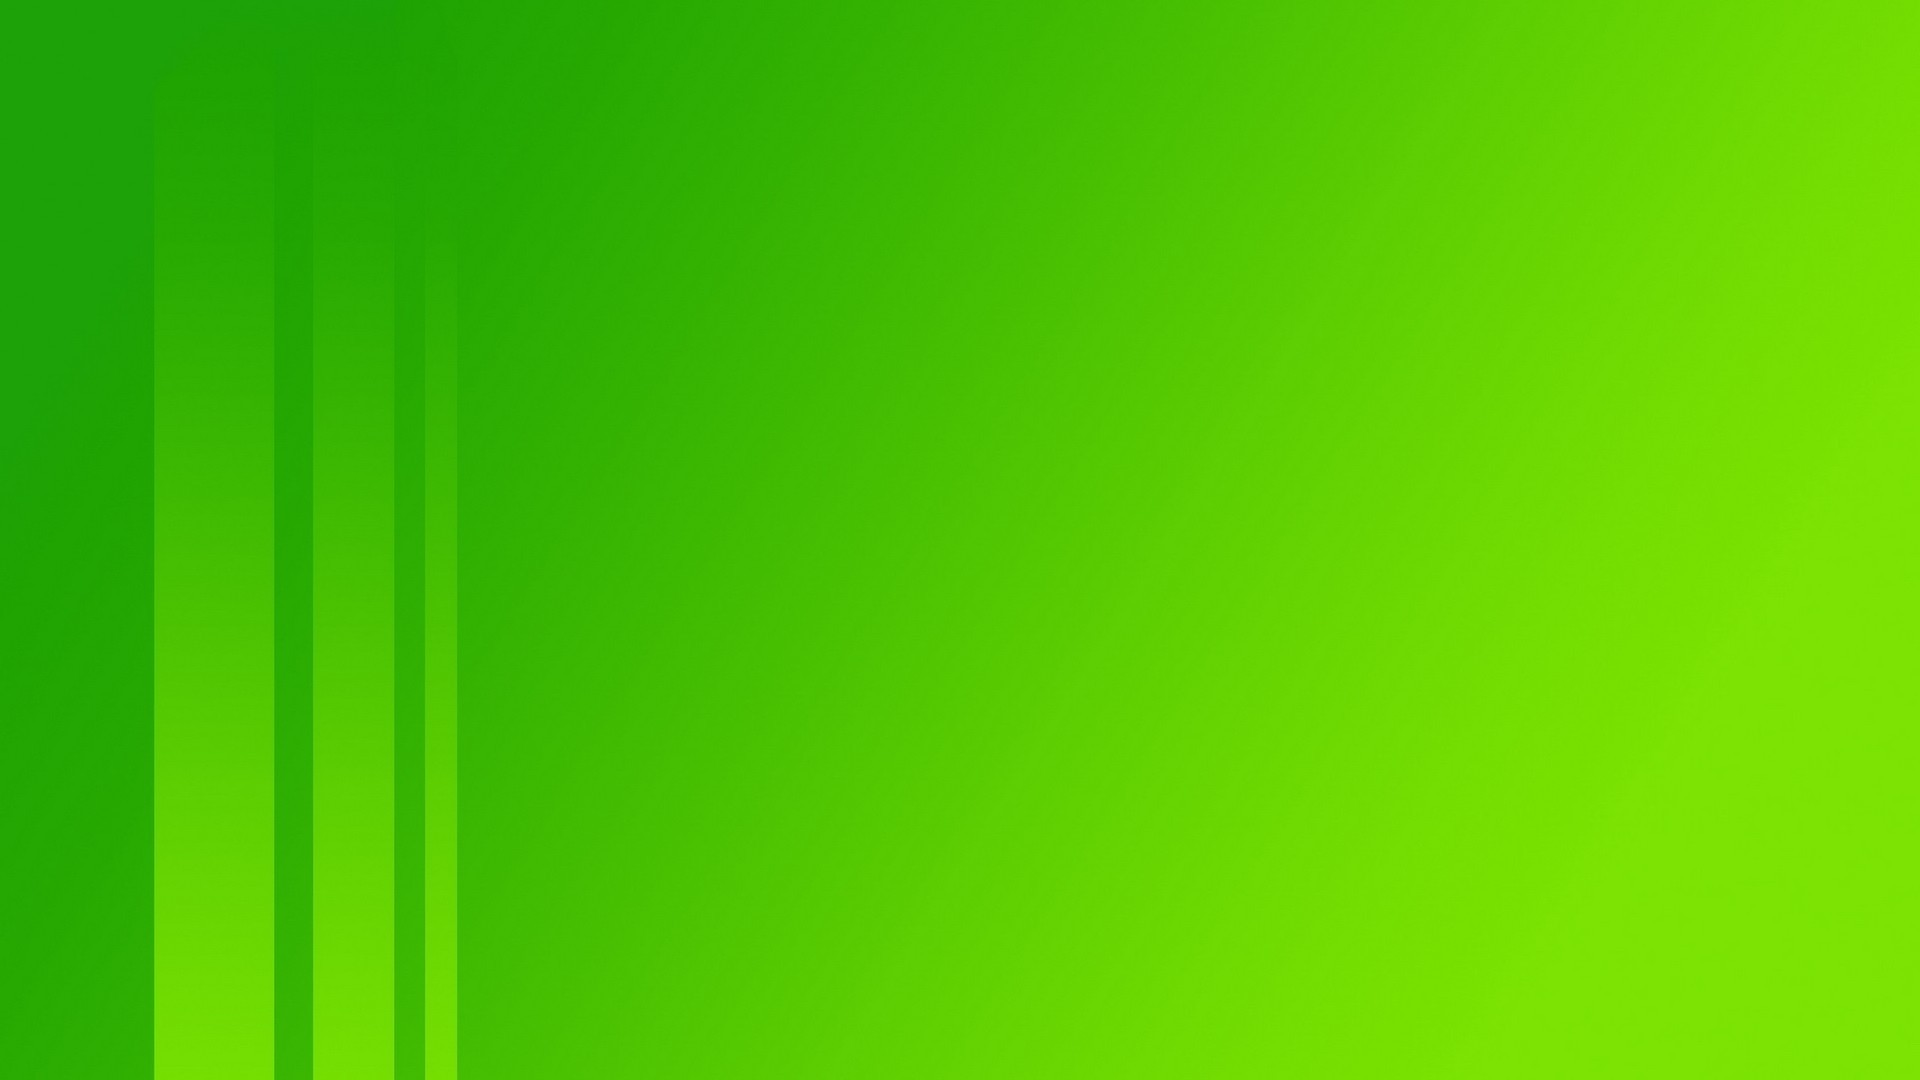 1920x1080 Solid Bright Green Background